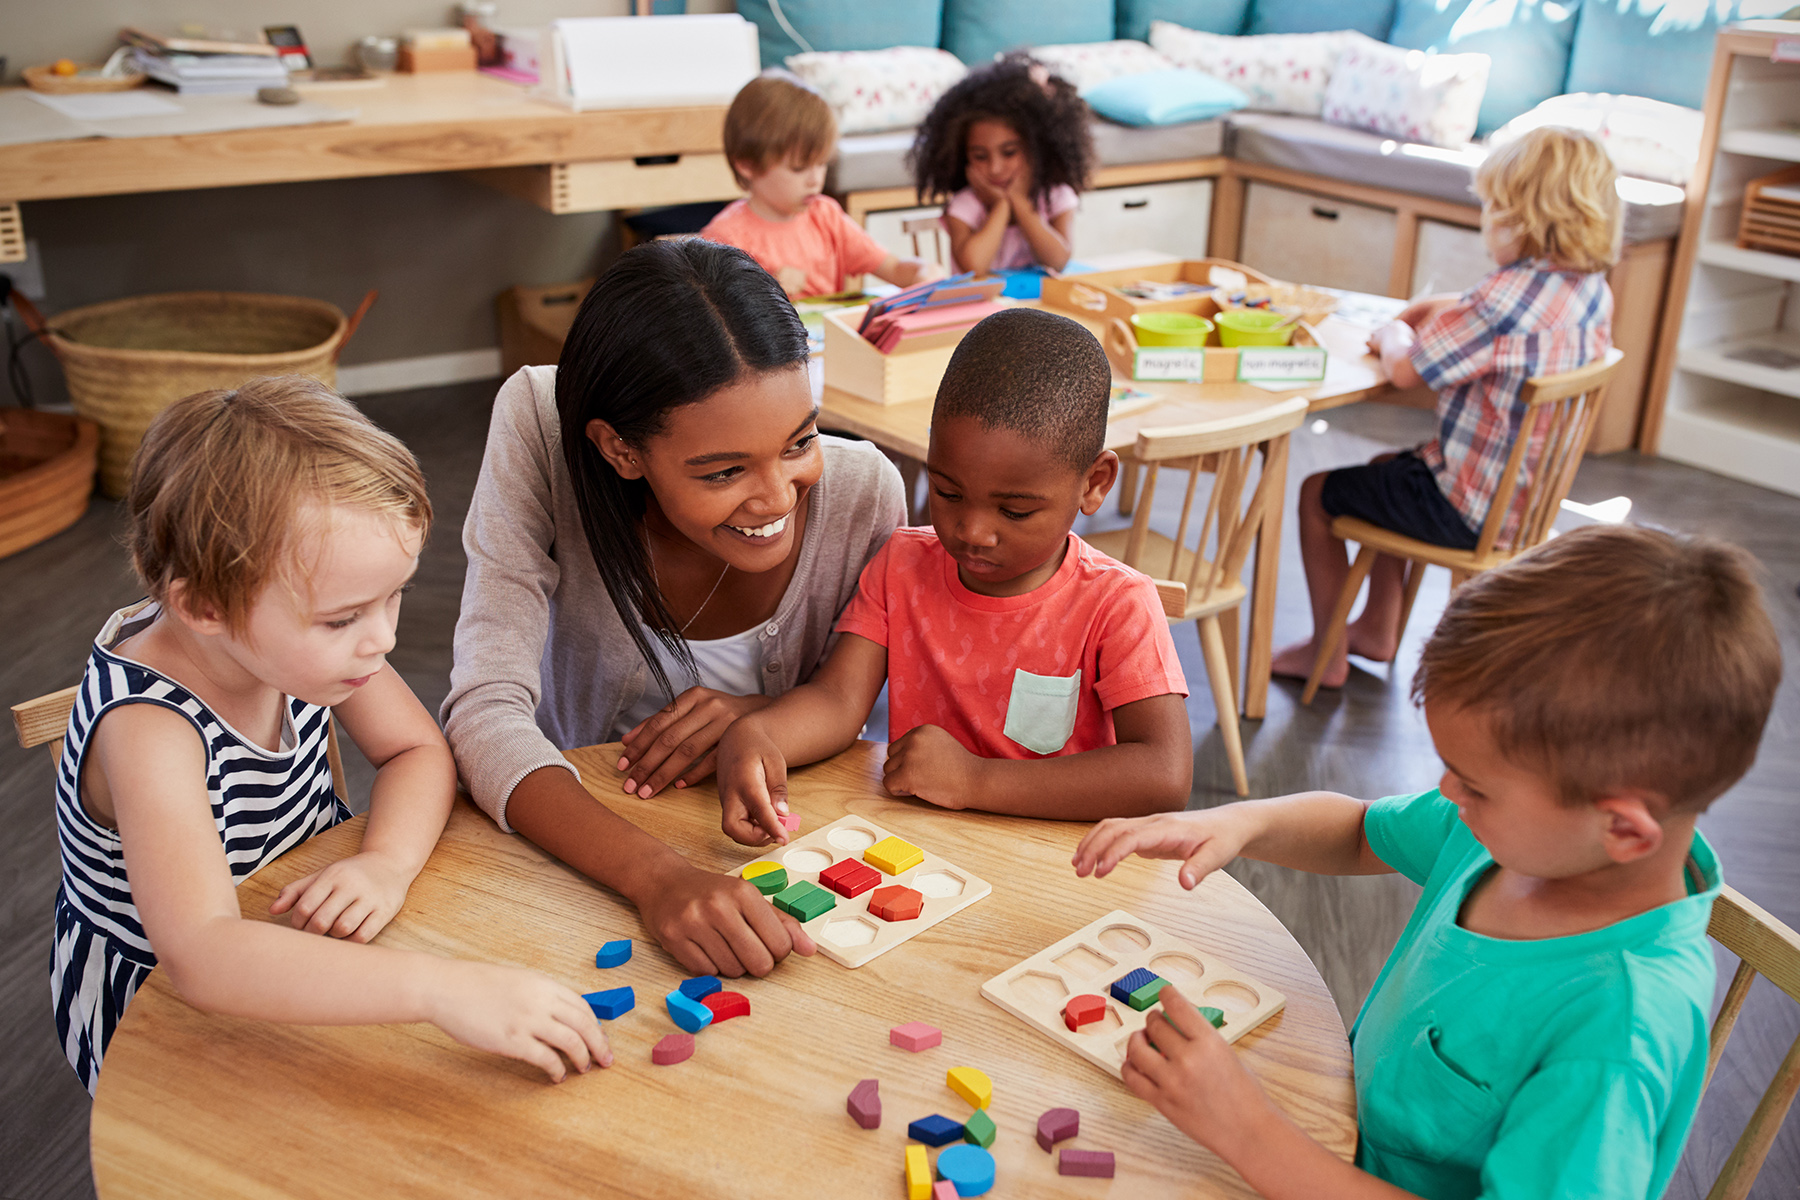 Preschool or Childcare Market to See Massive Growth by 2026 | Golden Apple Education, Crestar Education, Shanghai American School